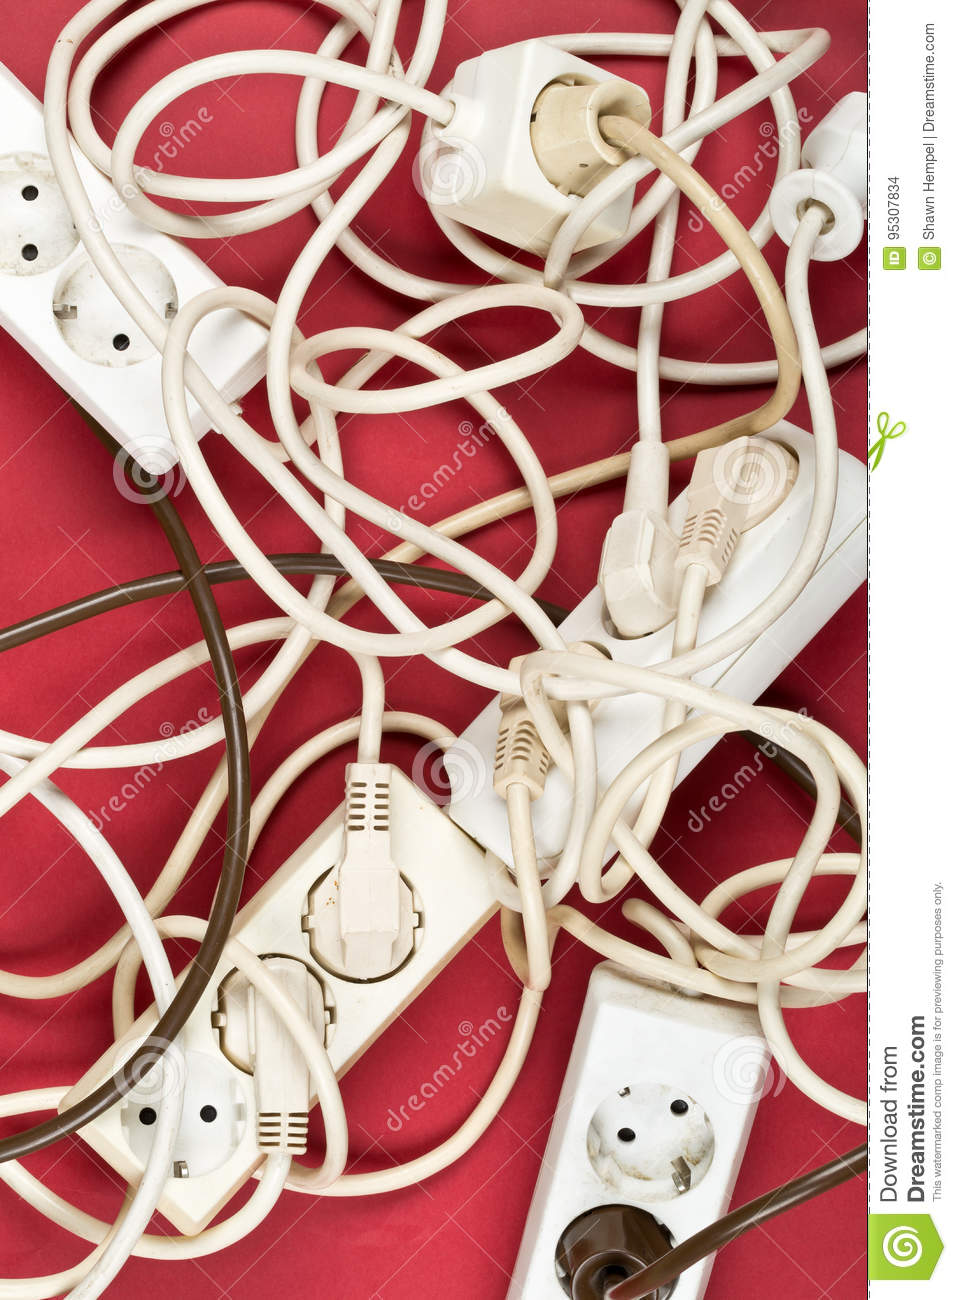 Cable Chaos Clutter From Multiple Electric Wire Extension Cords How To Cord Plug